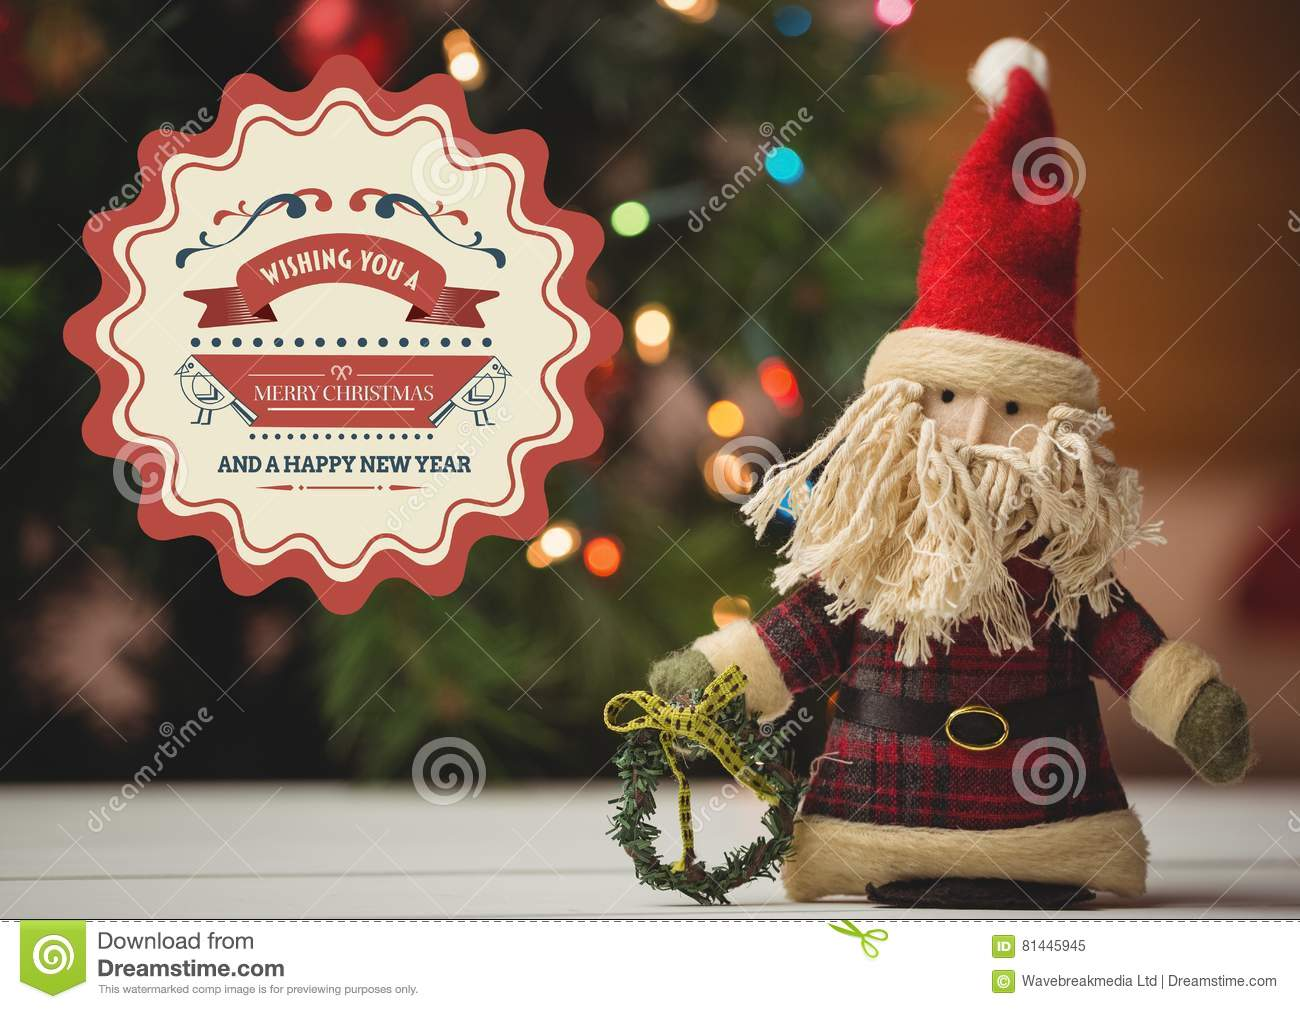 New year greeting quotes with santa doll stock illustration download new year greeting quotes with santa doll stock illustration illustration of festivity culture m4hsunfo